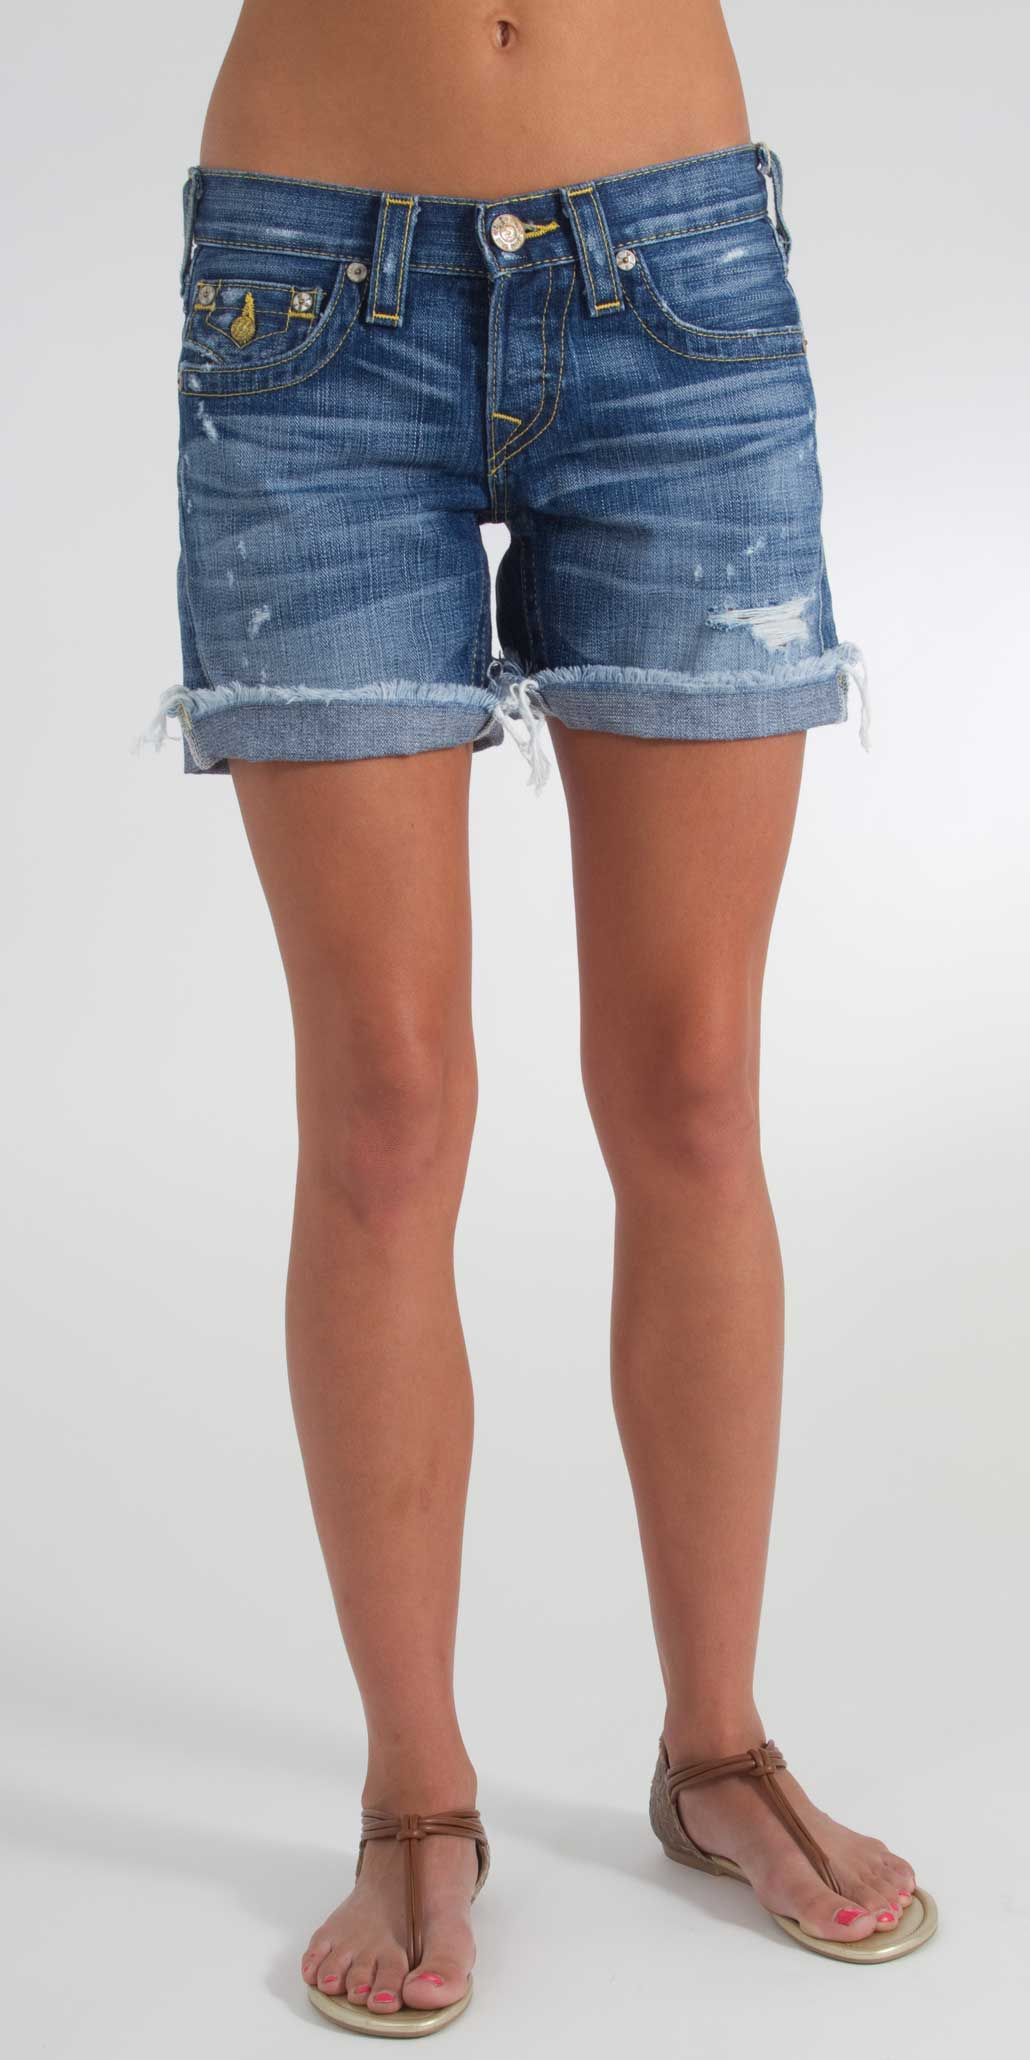 I have a pair of these but they weren't $246.00!!True Religion Jayde Gold Vintage Short in Missouri - $246.00